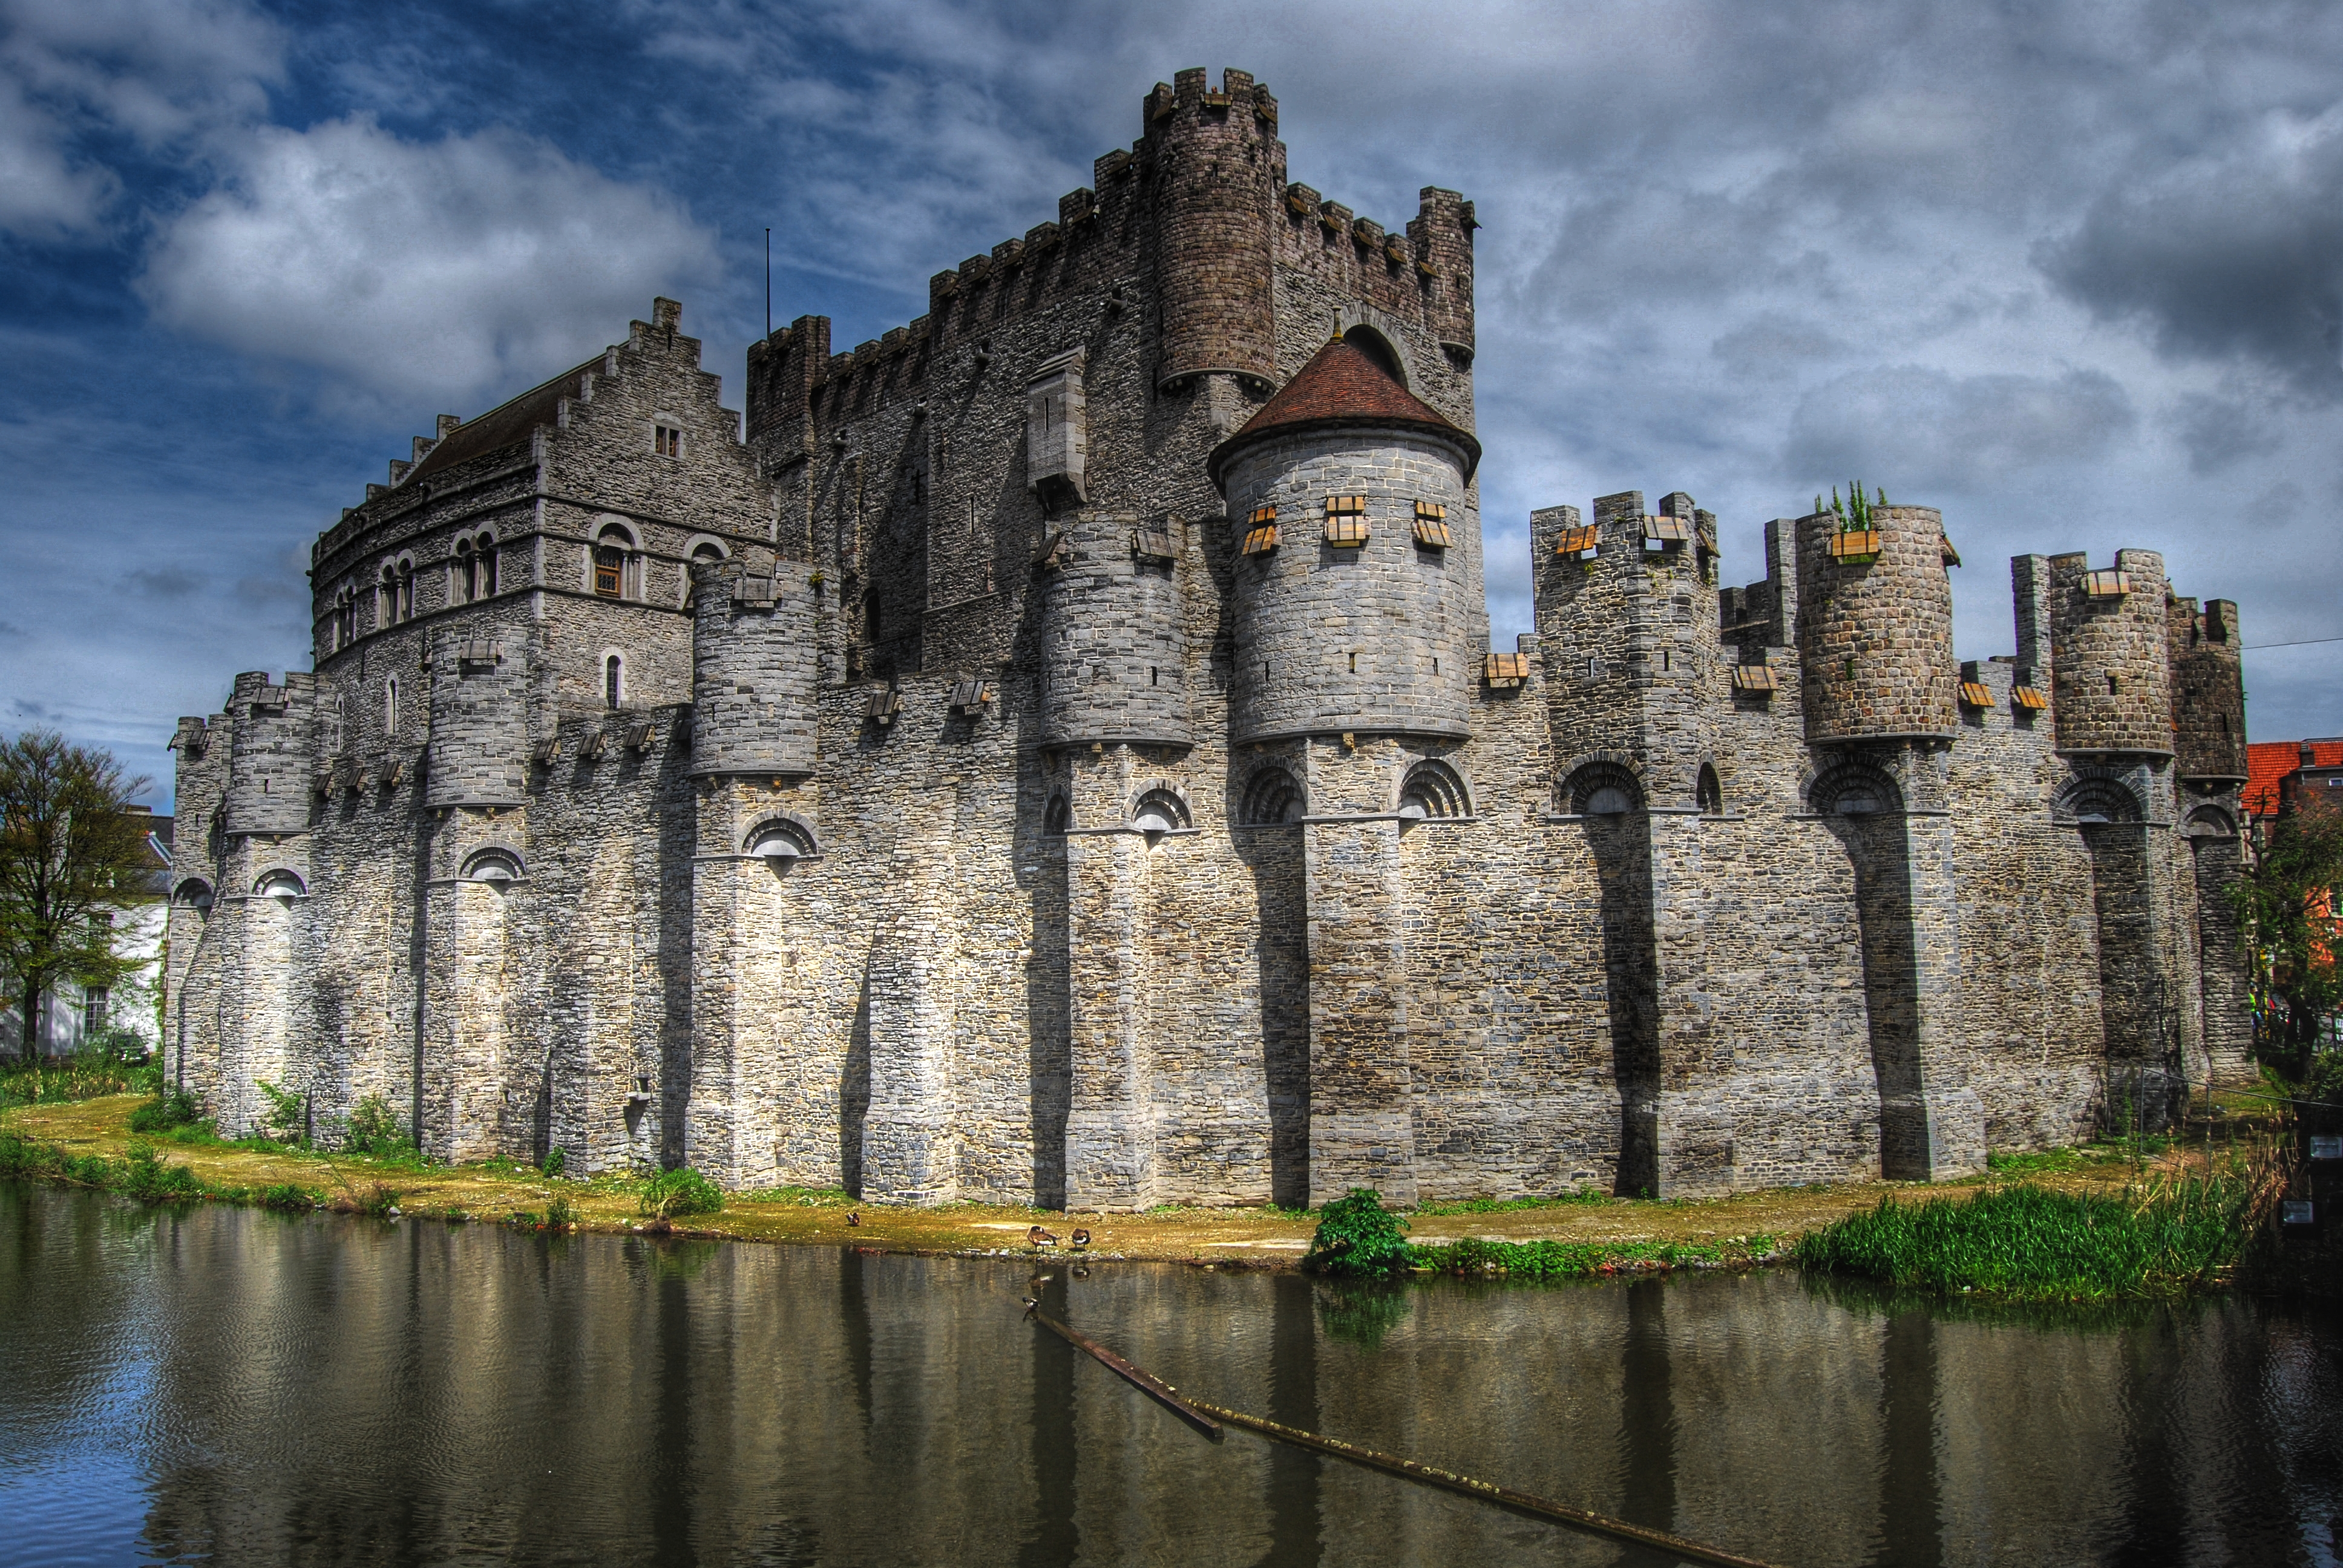 imposing castle of grey stone surrounded by moat